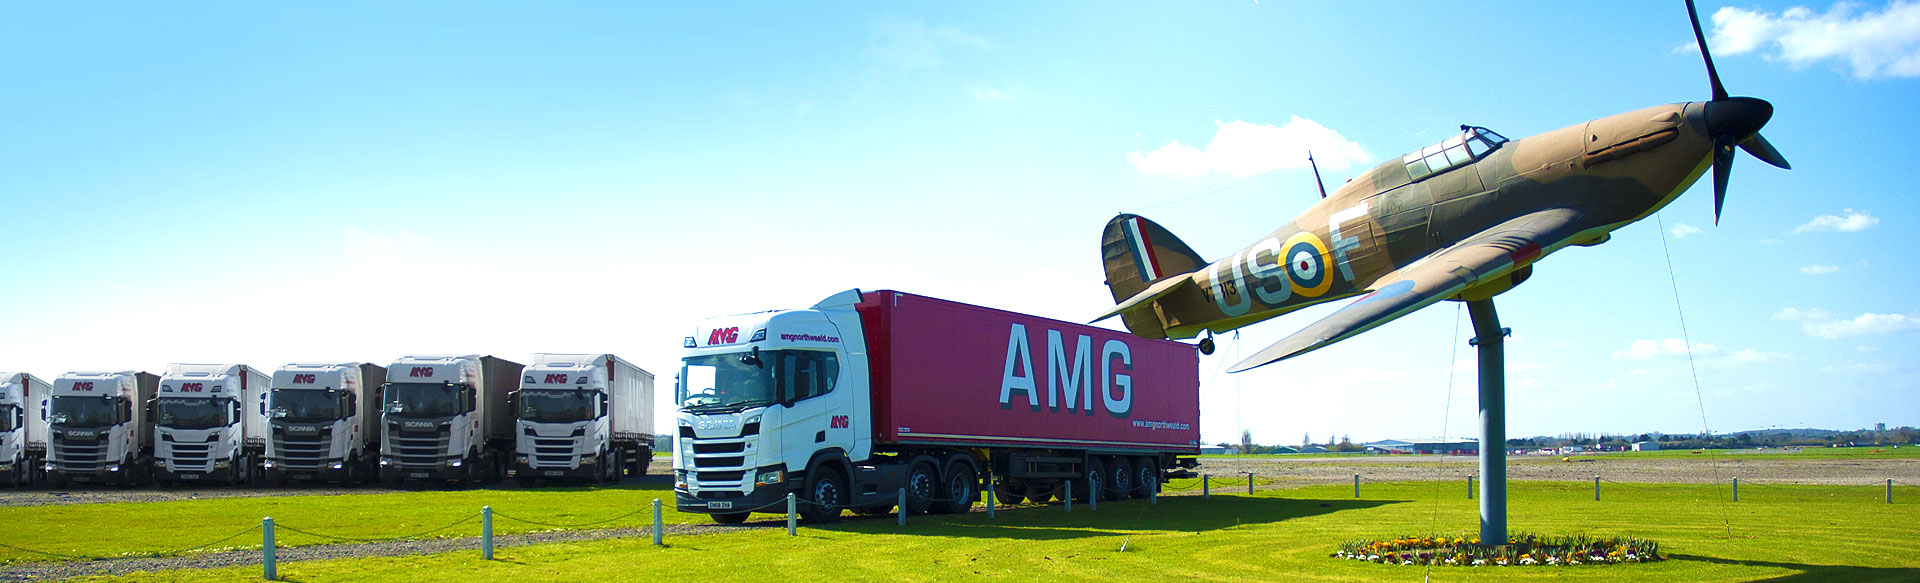 Artic Fleet at N.W. Airfield, Essex